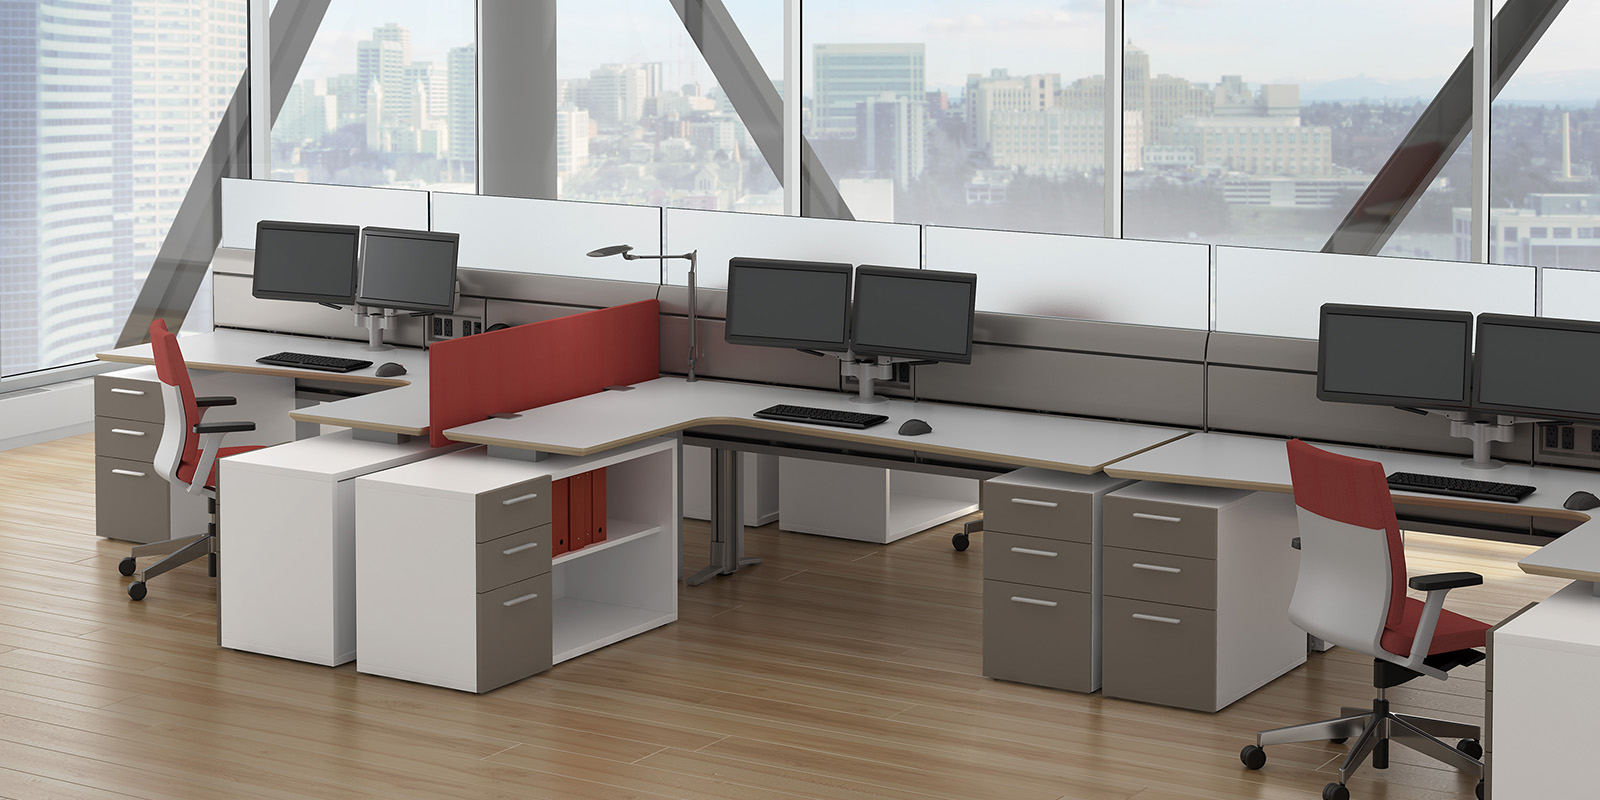 Watson M2 Open Office Design